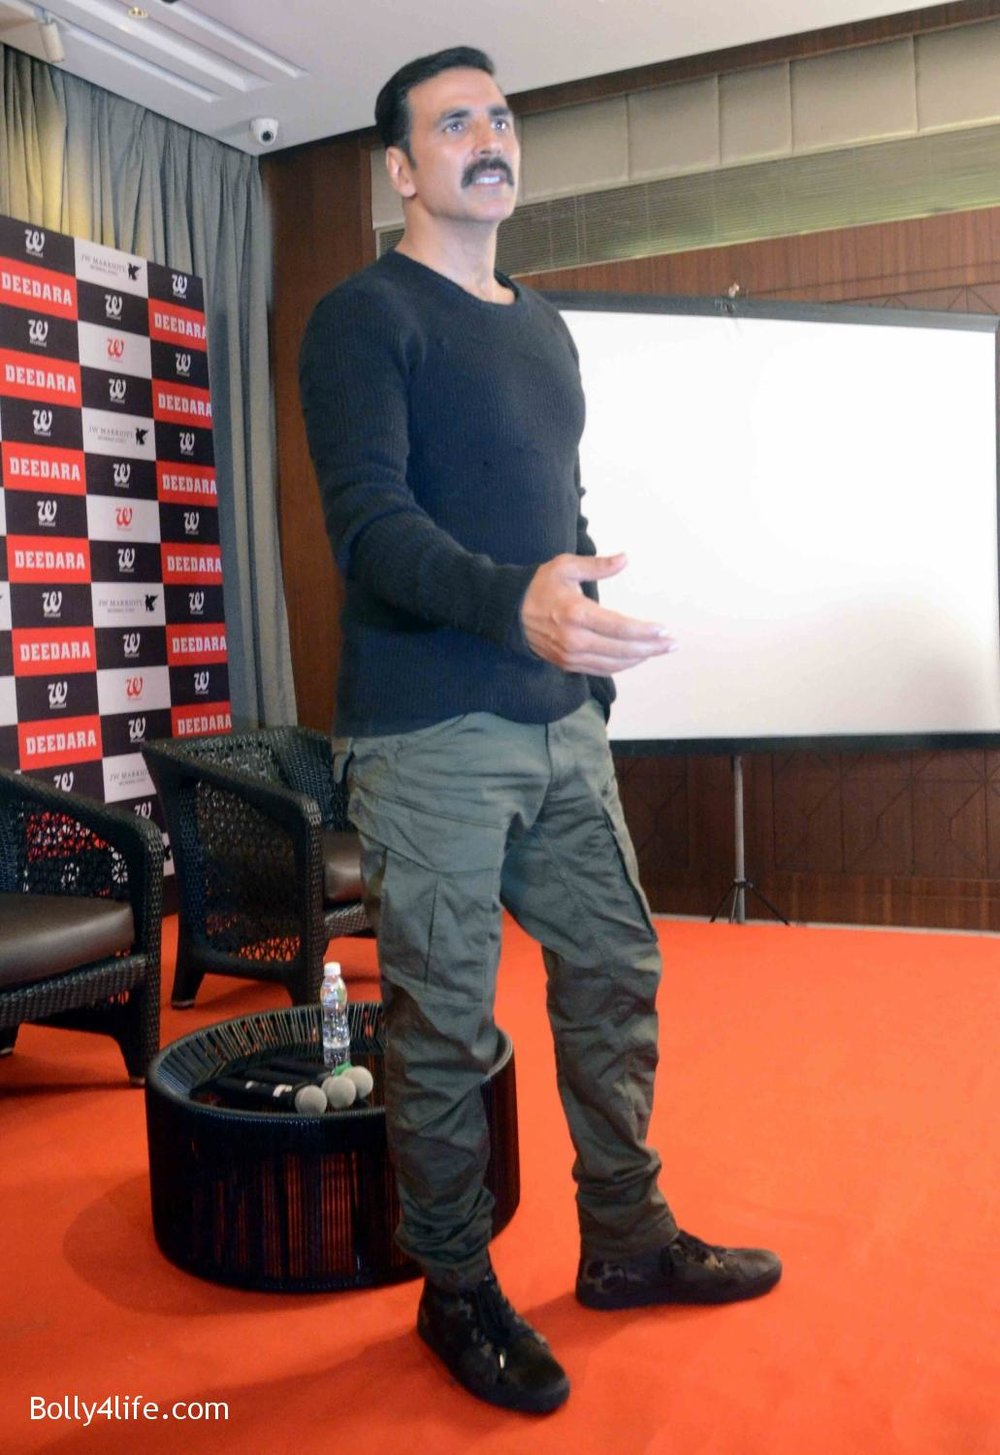 Akshay-Kumar-launches-book-Deedara-13.jpg